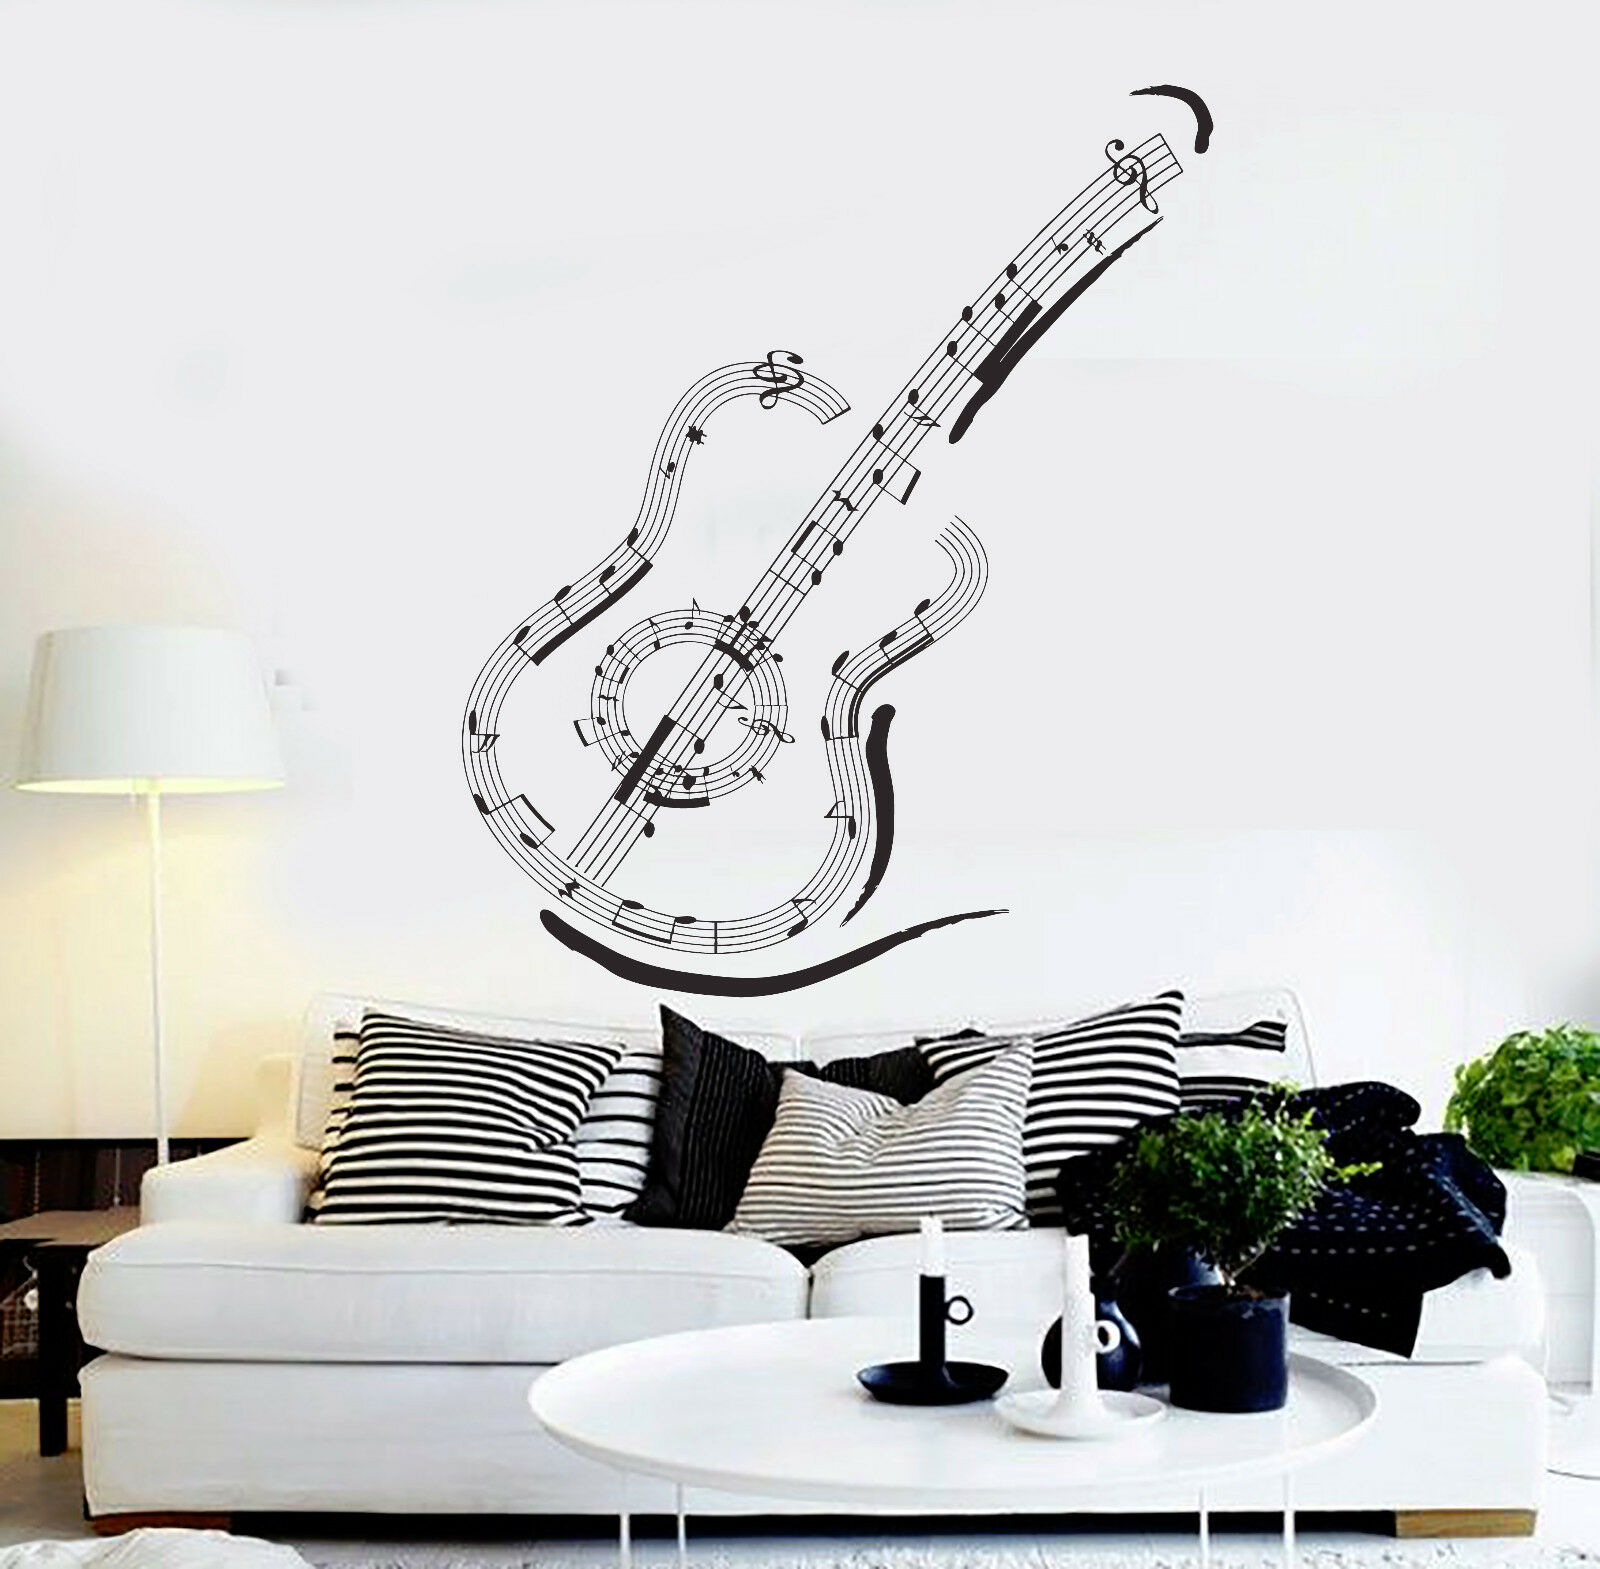 Vinyl Wall Decal Guitar Music Notes Musical Art Stickers Mural (ig4606)